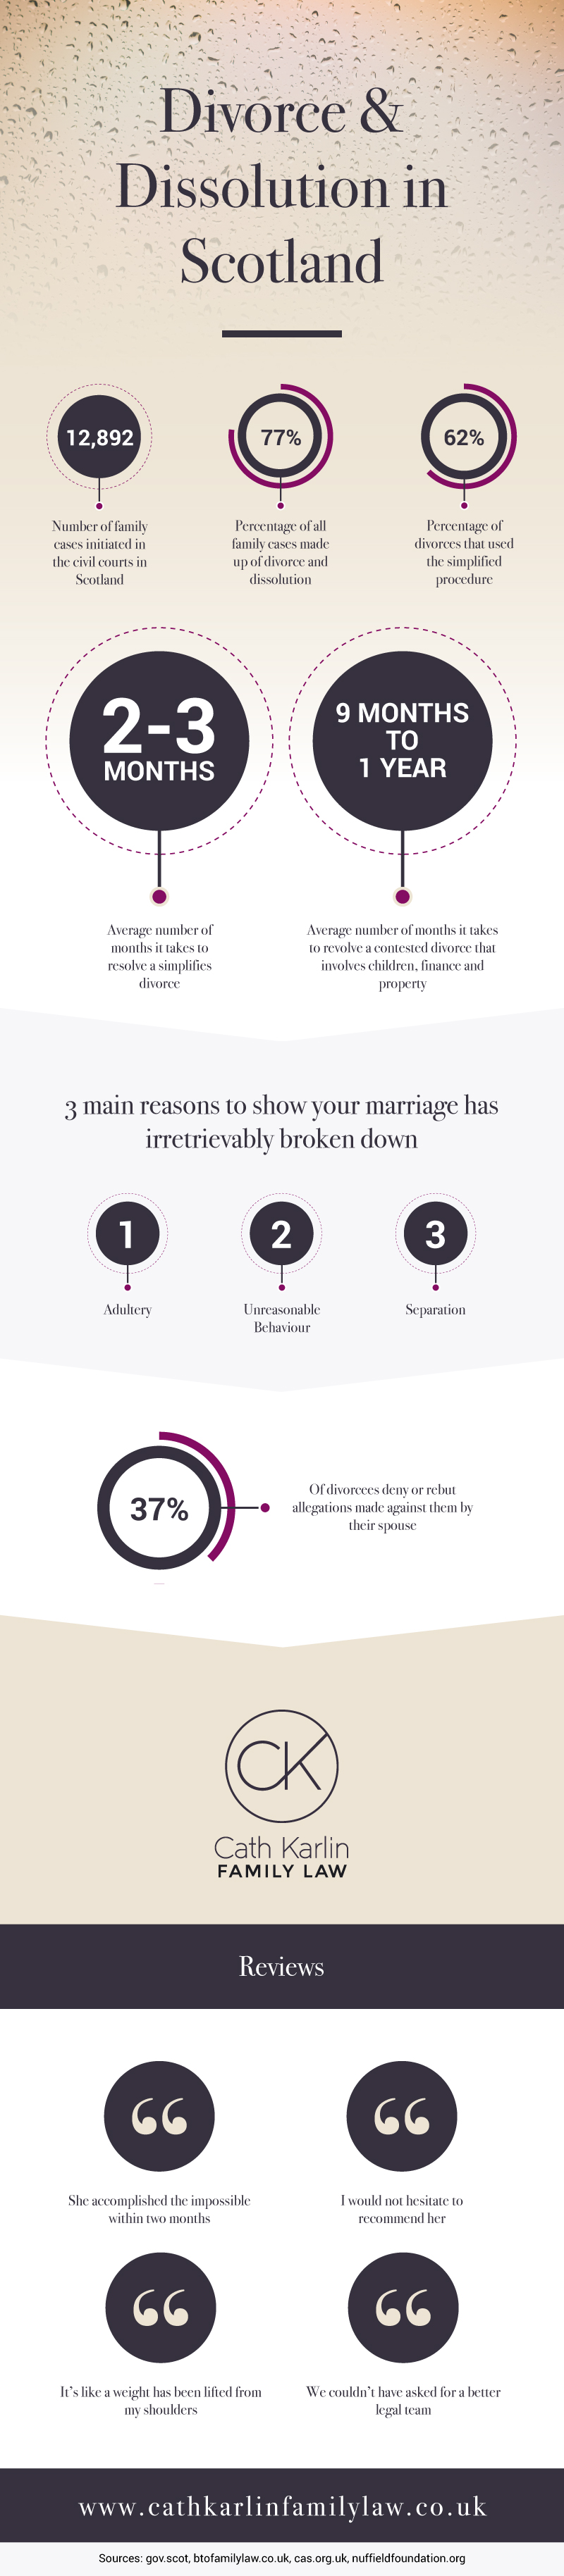 Family Law Divorce Statistics